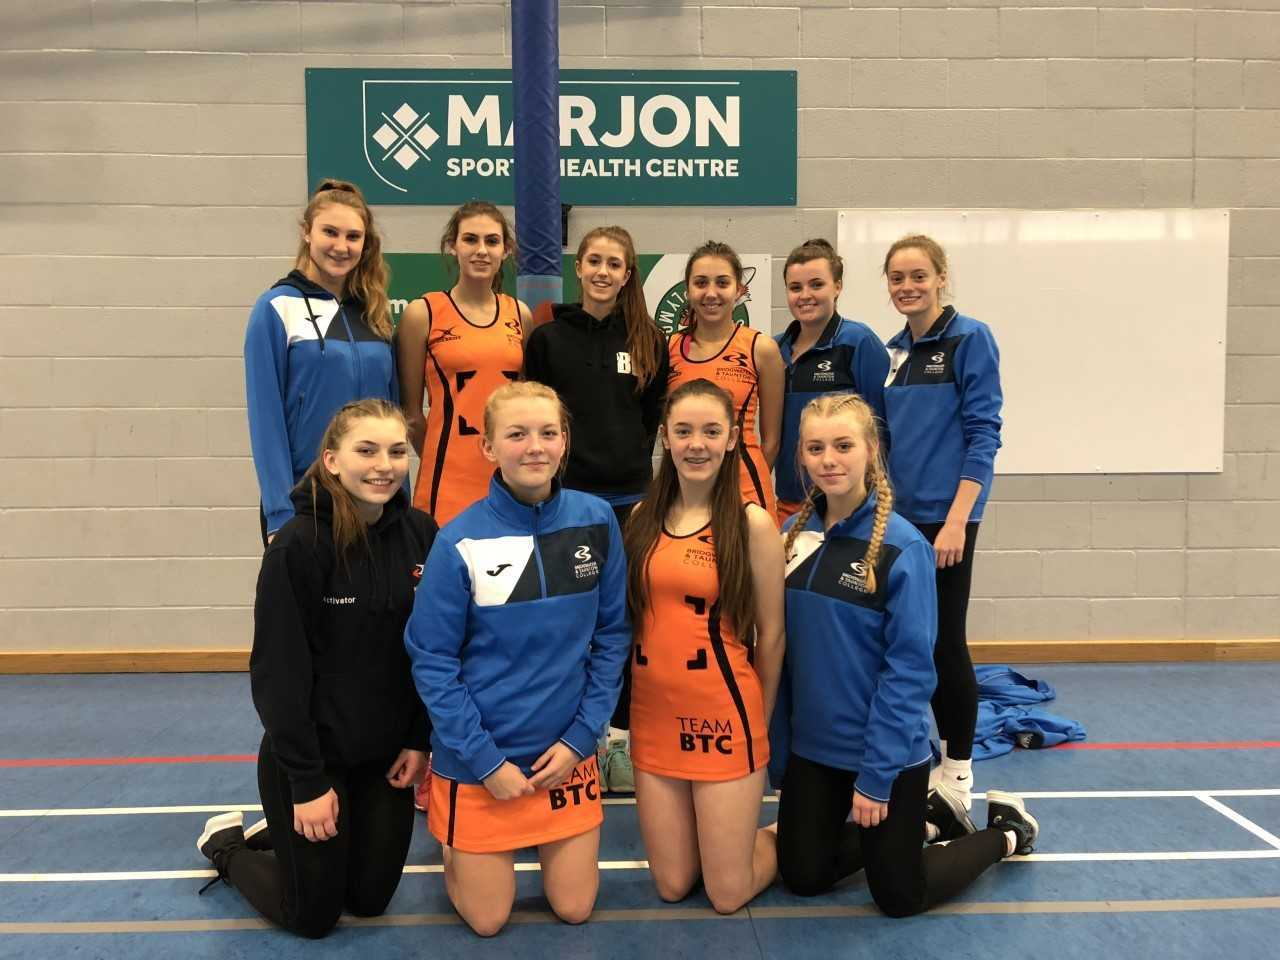 Team BTC netball at AoC Regional Championships: back row, from left - Maddie Kennard, Sophie Bond, Emily Rossiter, Olivia Handle, Jess Bull, Tilly Milburn; front row - Hannah Stephens, Katie Harris, Georgina Goodwin, Katie Bailiss.